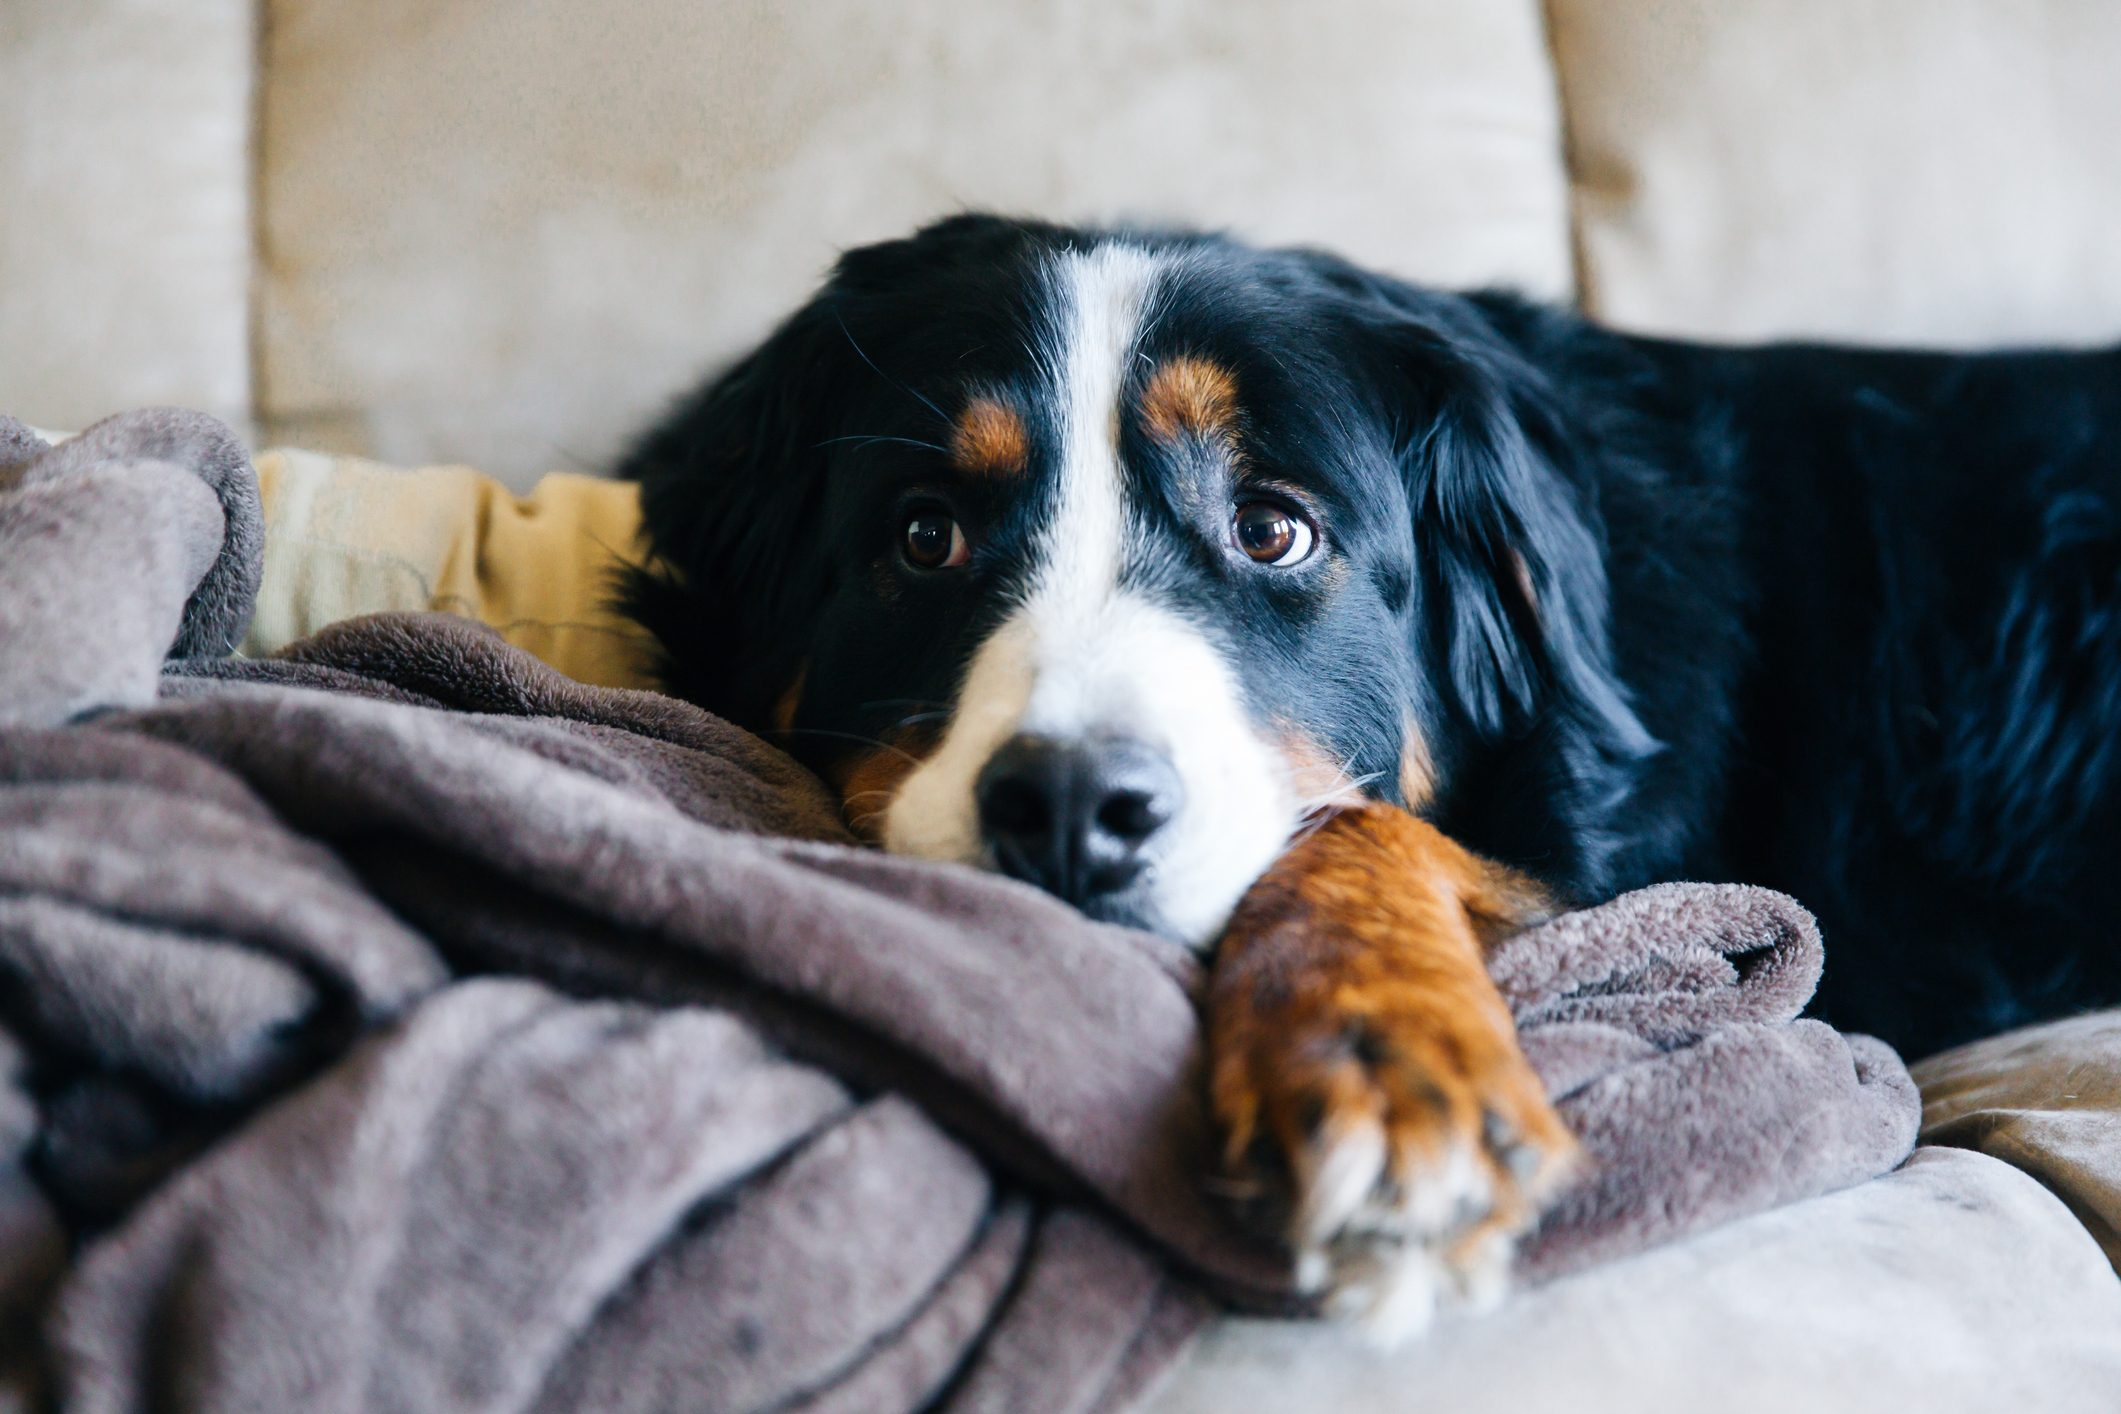 Bernese Mountain Dog, Cute Dog, Family Pet, Family Dog, Dog on Couch